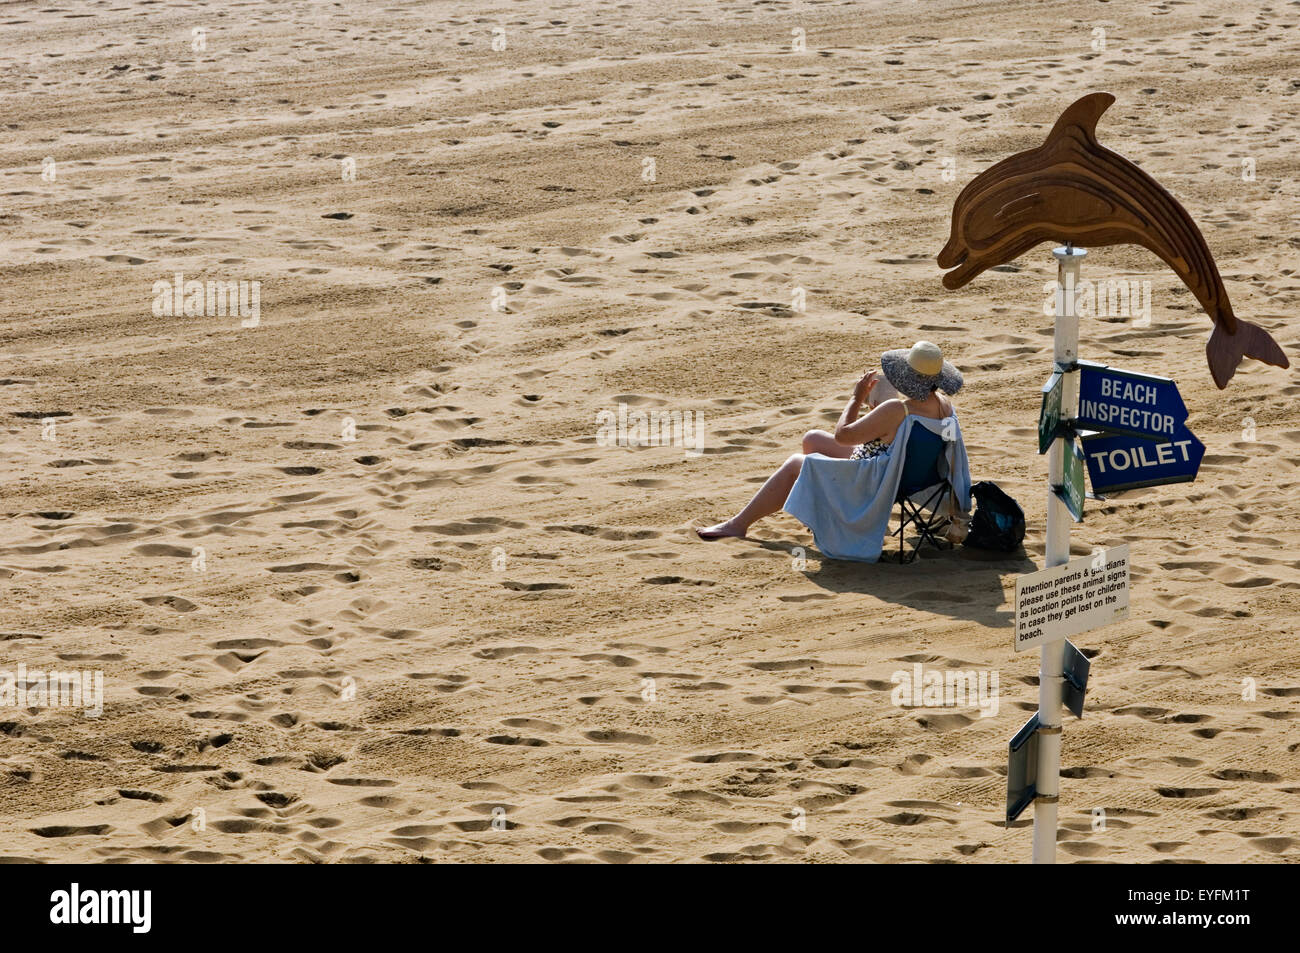 A lone woman sitting on the beach at Viking Bay; Broadstairs, Thanet, Kent, England - Stock Image